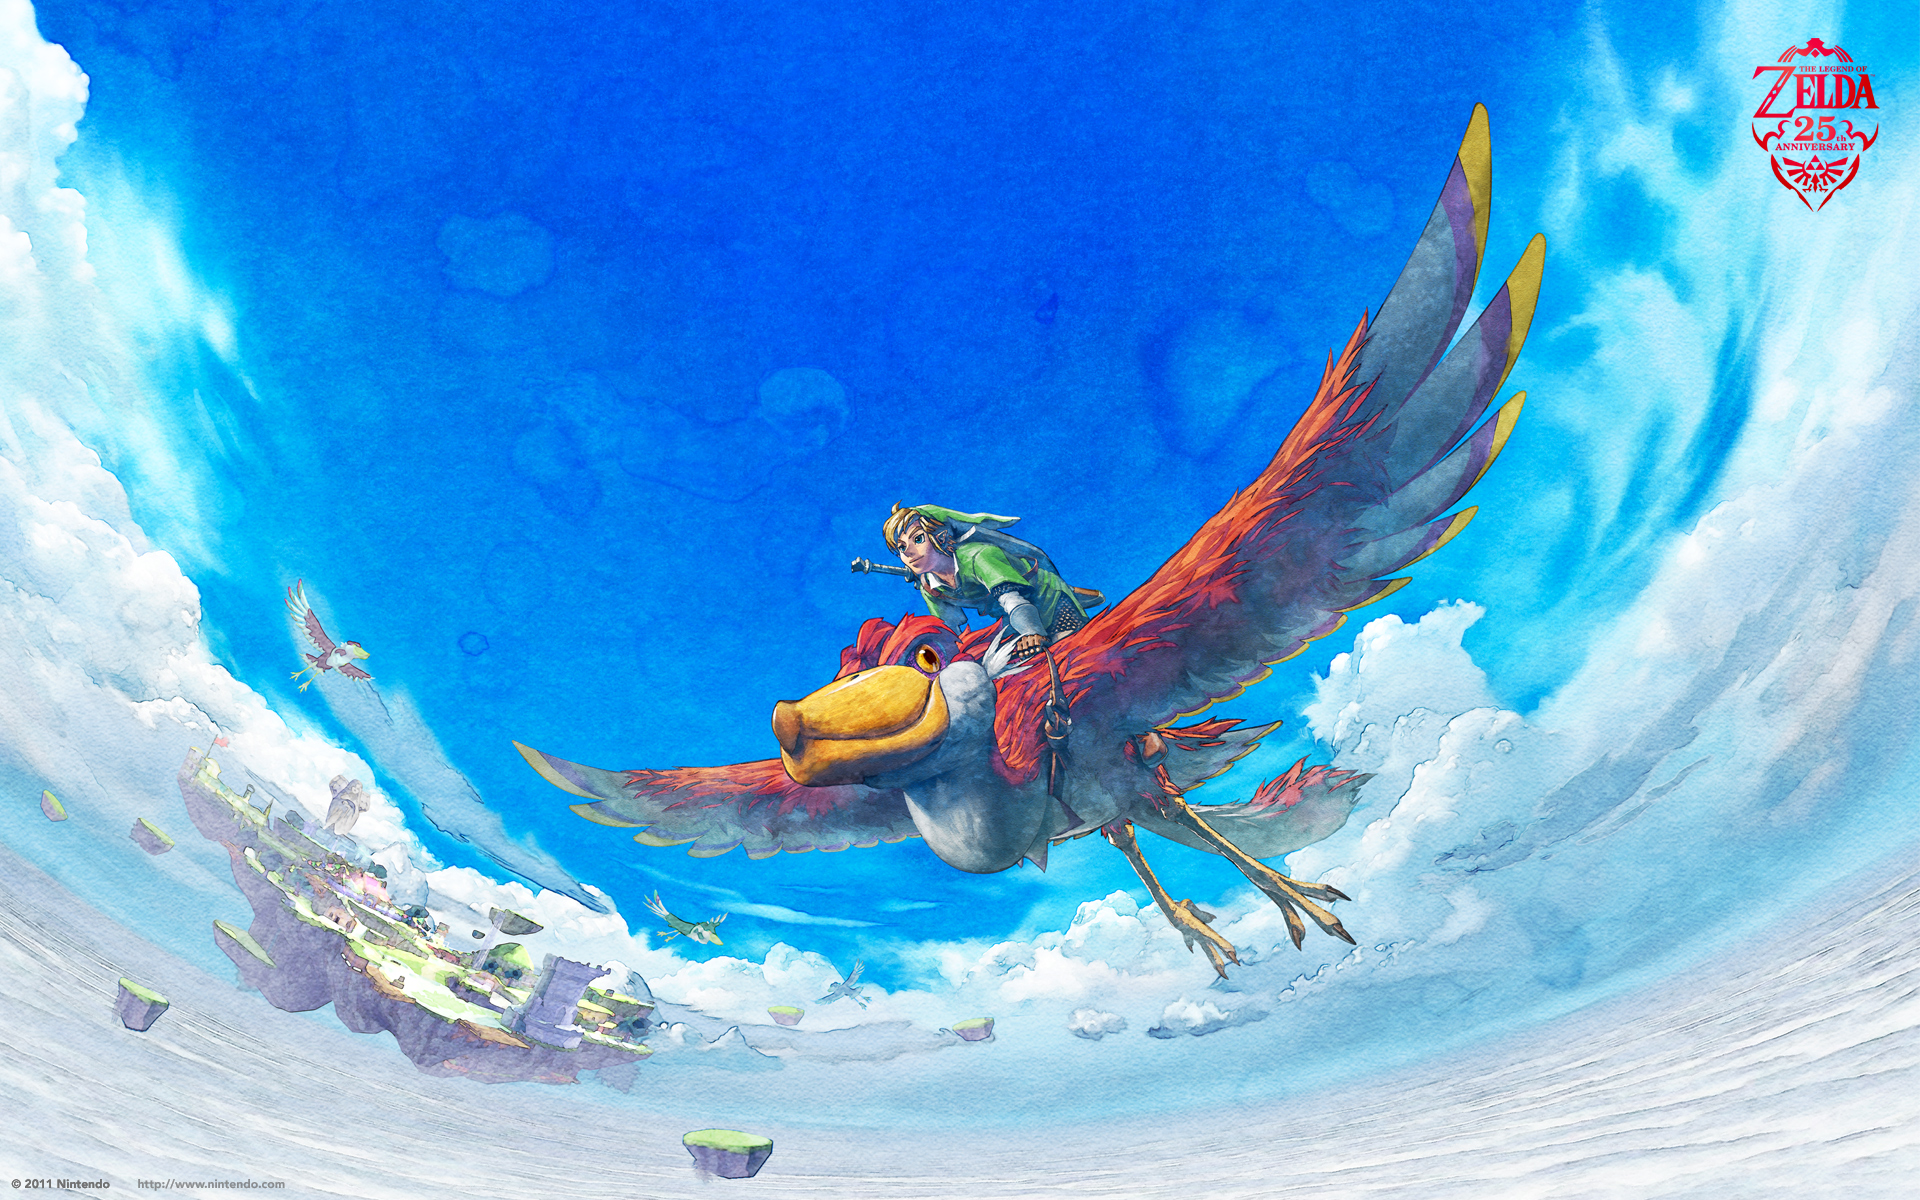 The Legend of Zelda: Skyward Sword images 25th anniversary wallpaper HD wallpaper and background photos